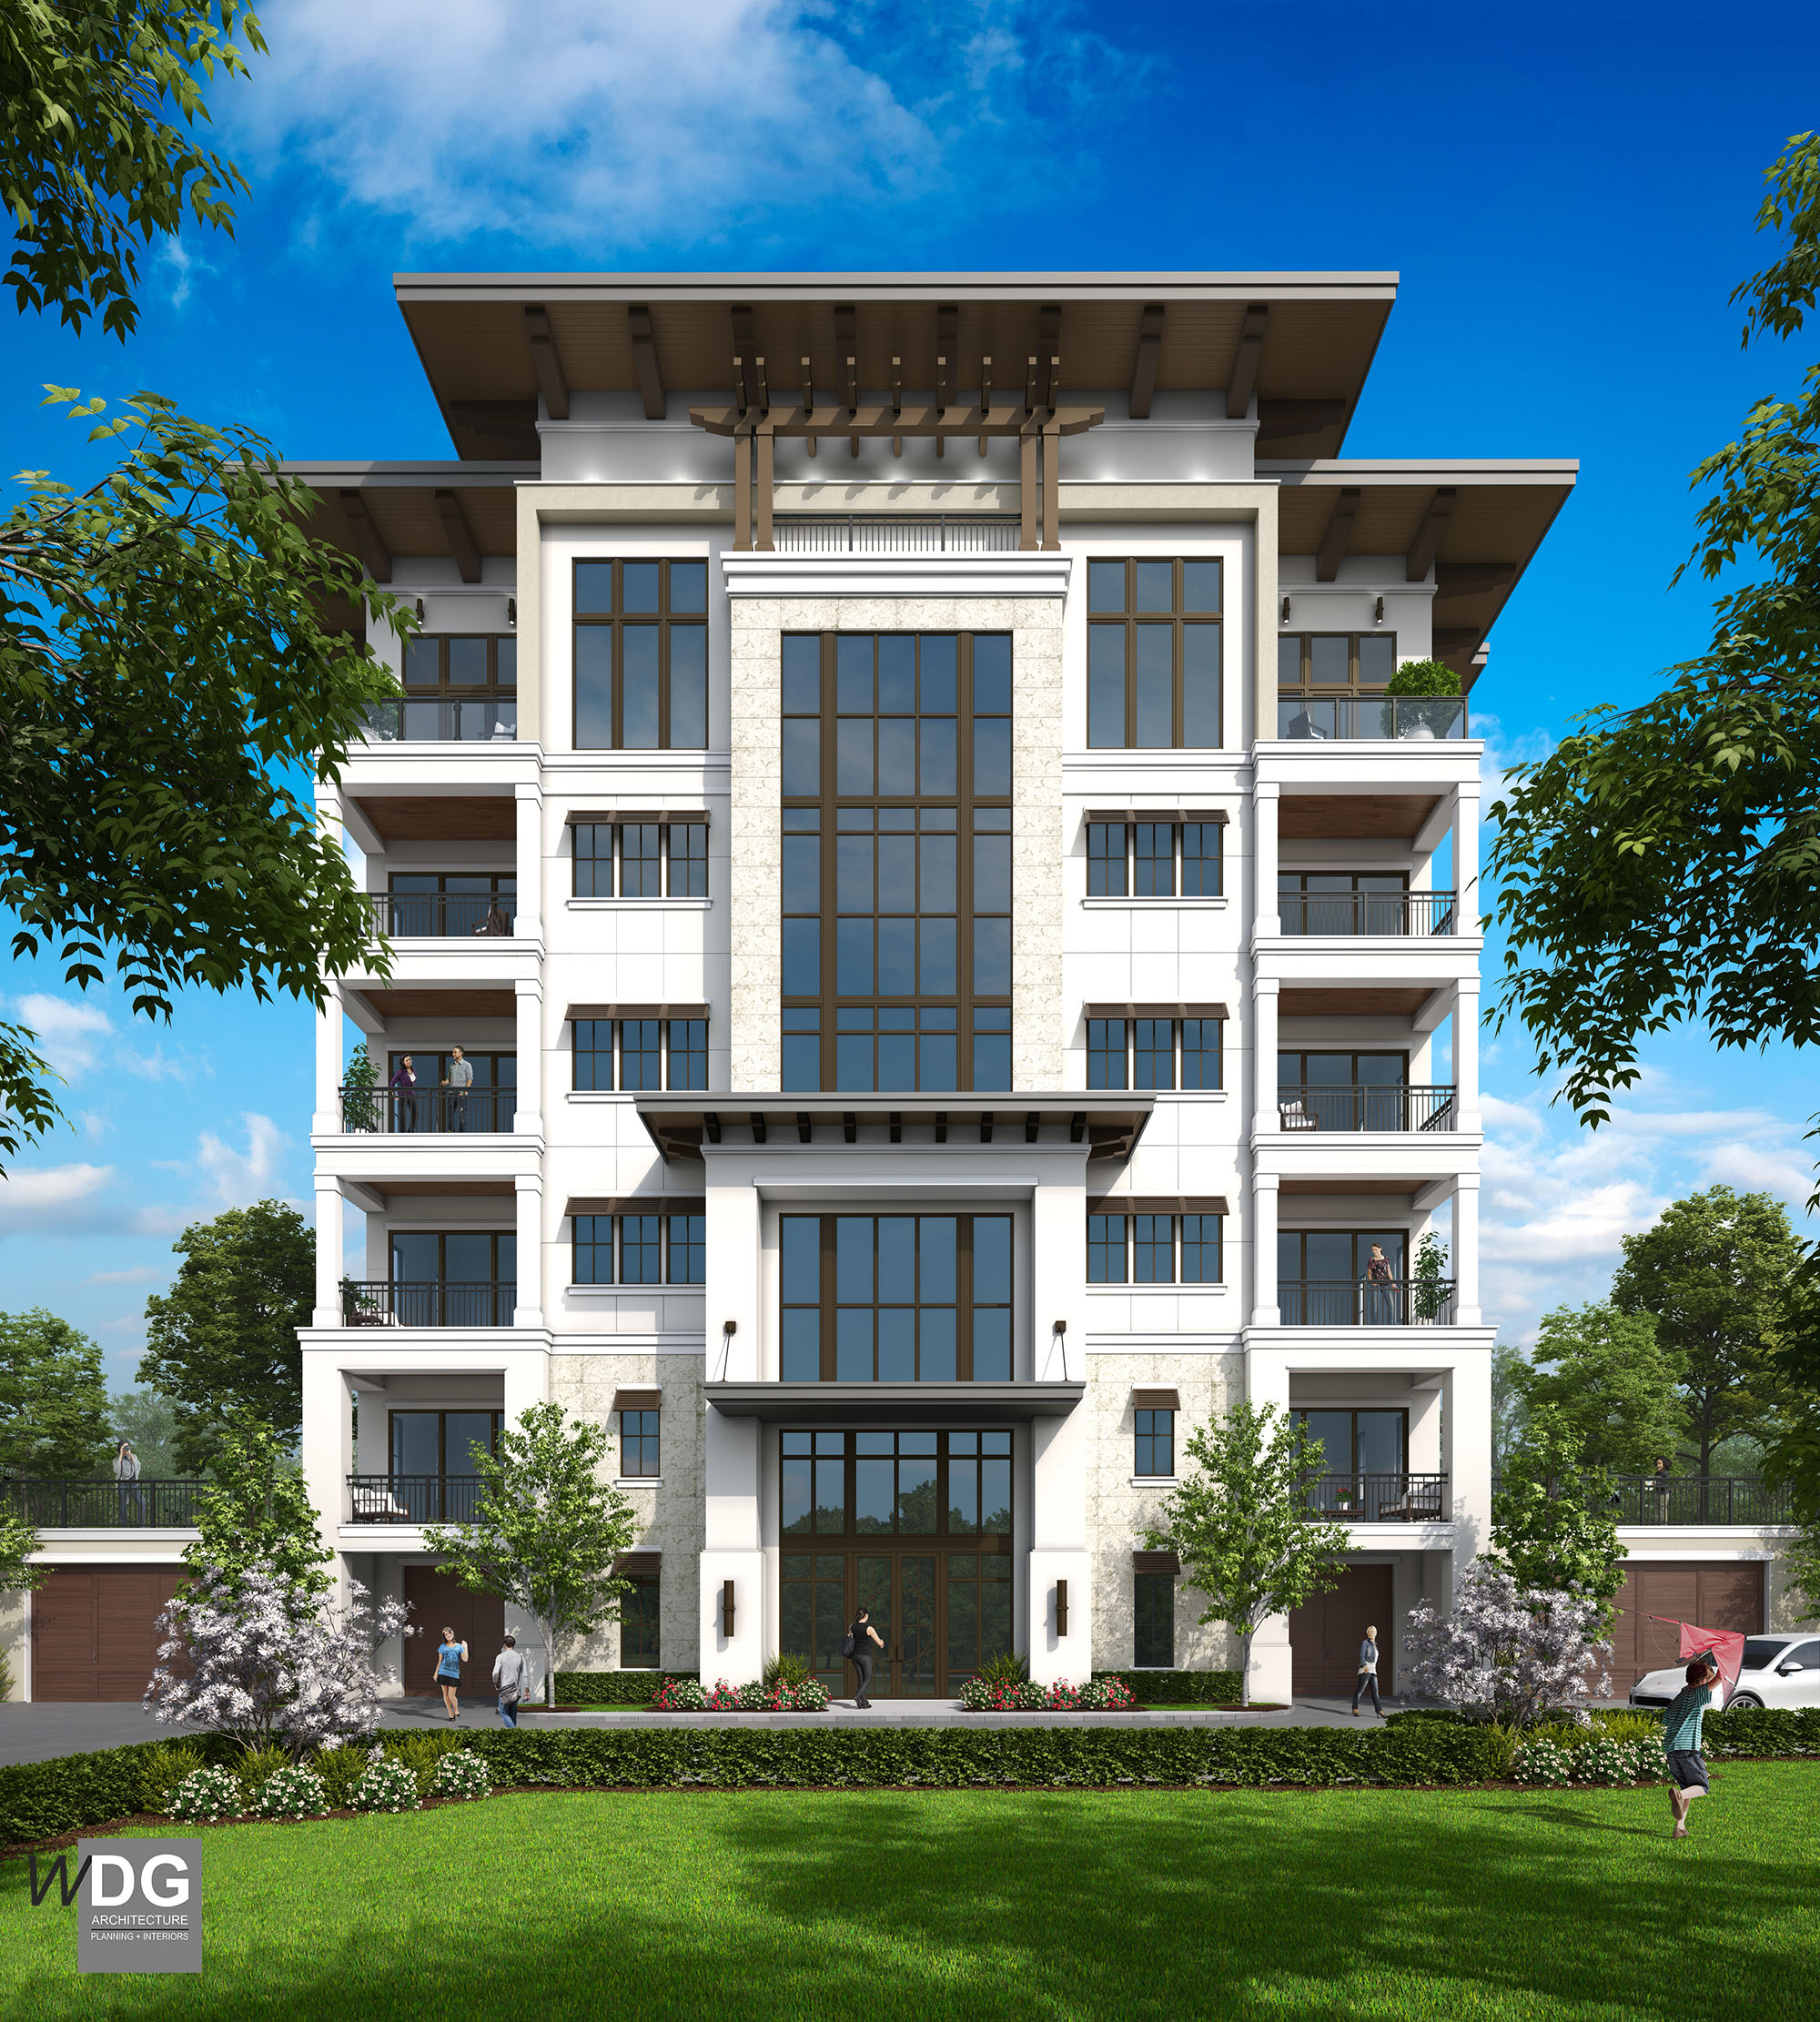 05 Watermark V2multifamily architecture